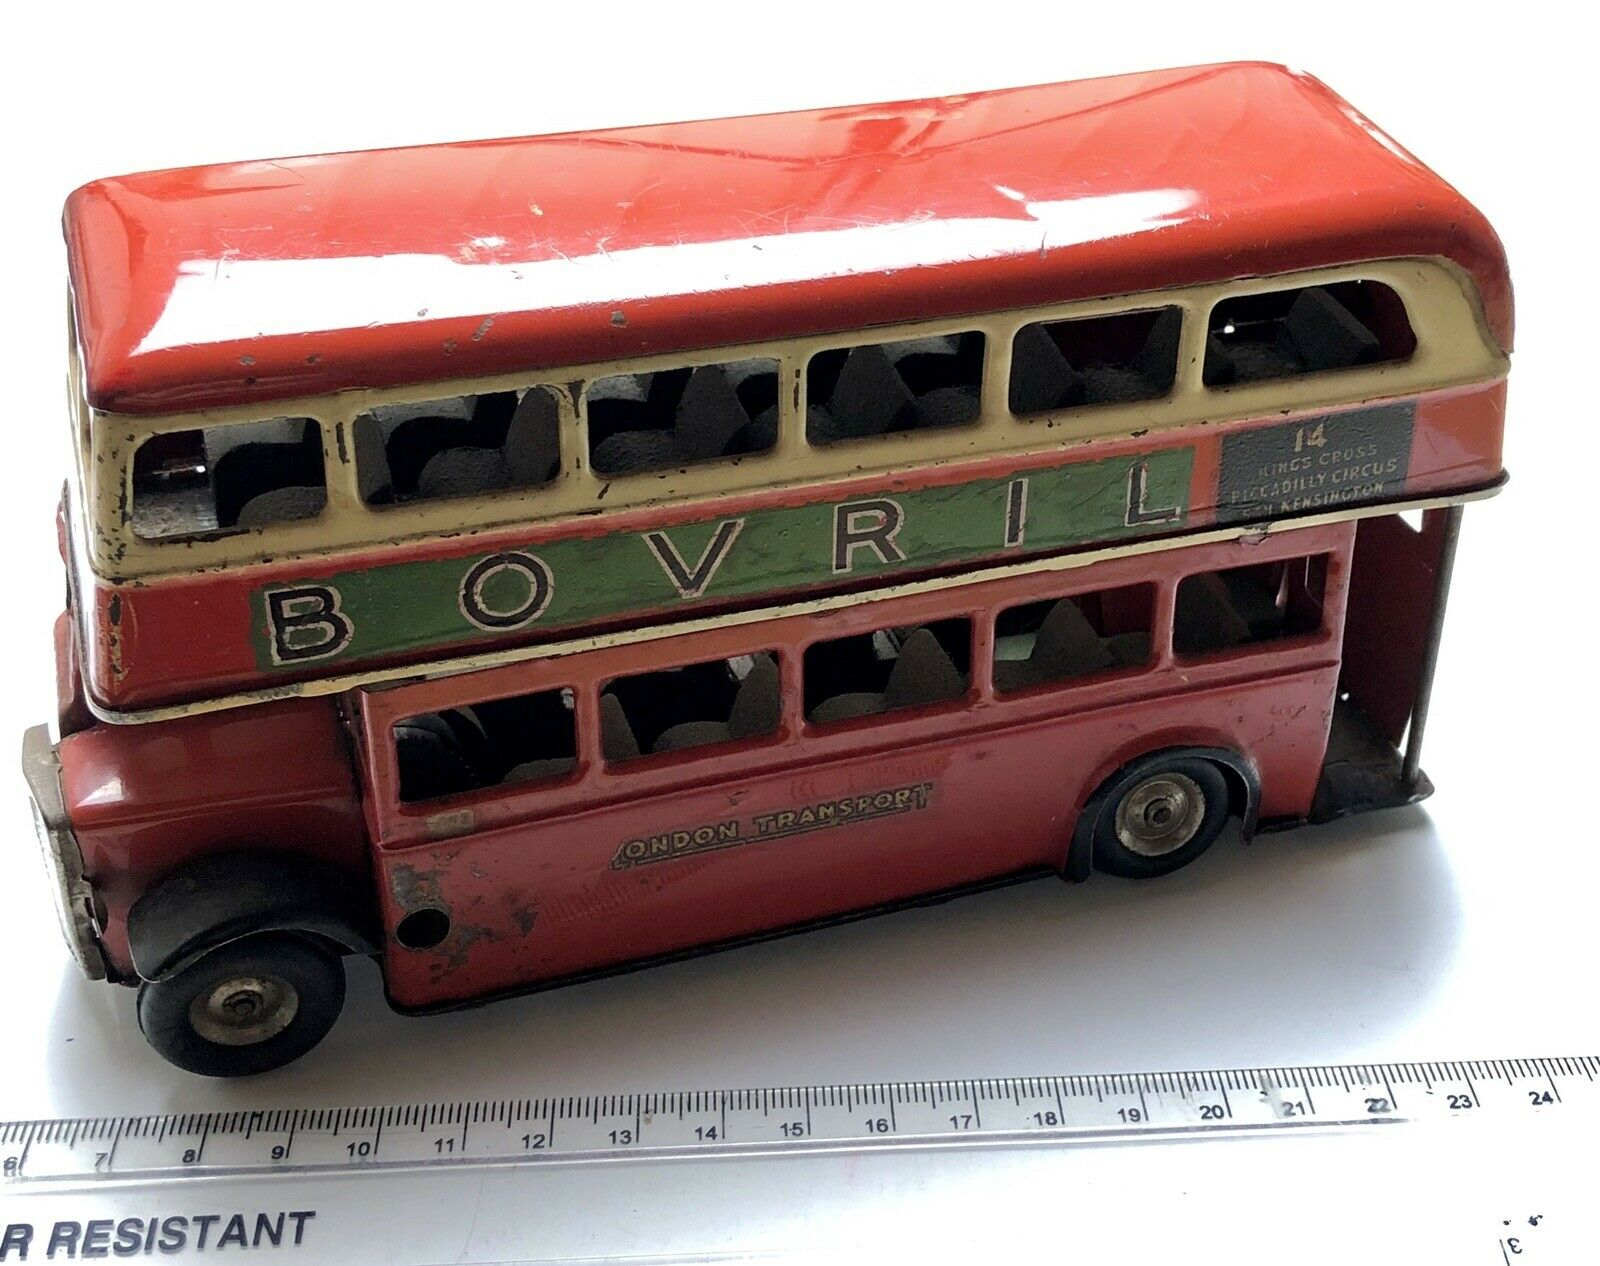 Vintage TRIANG Mini Double Decker London Transport Iconic rot Bus - Working Well